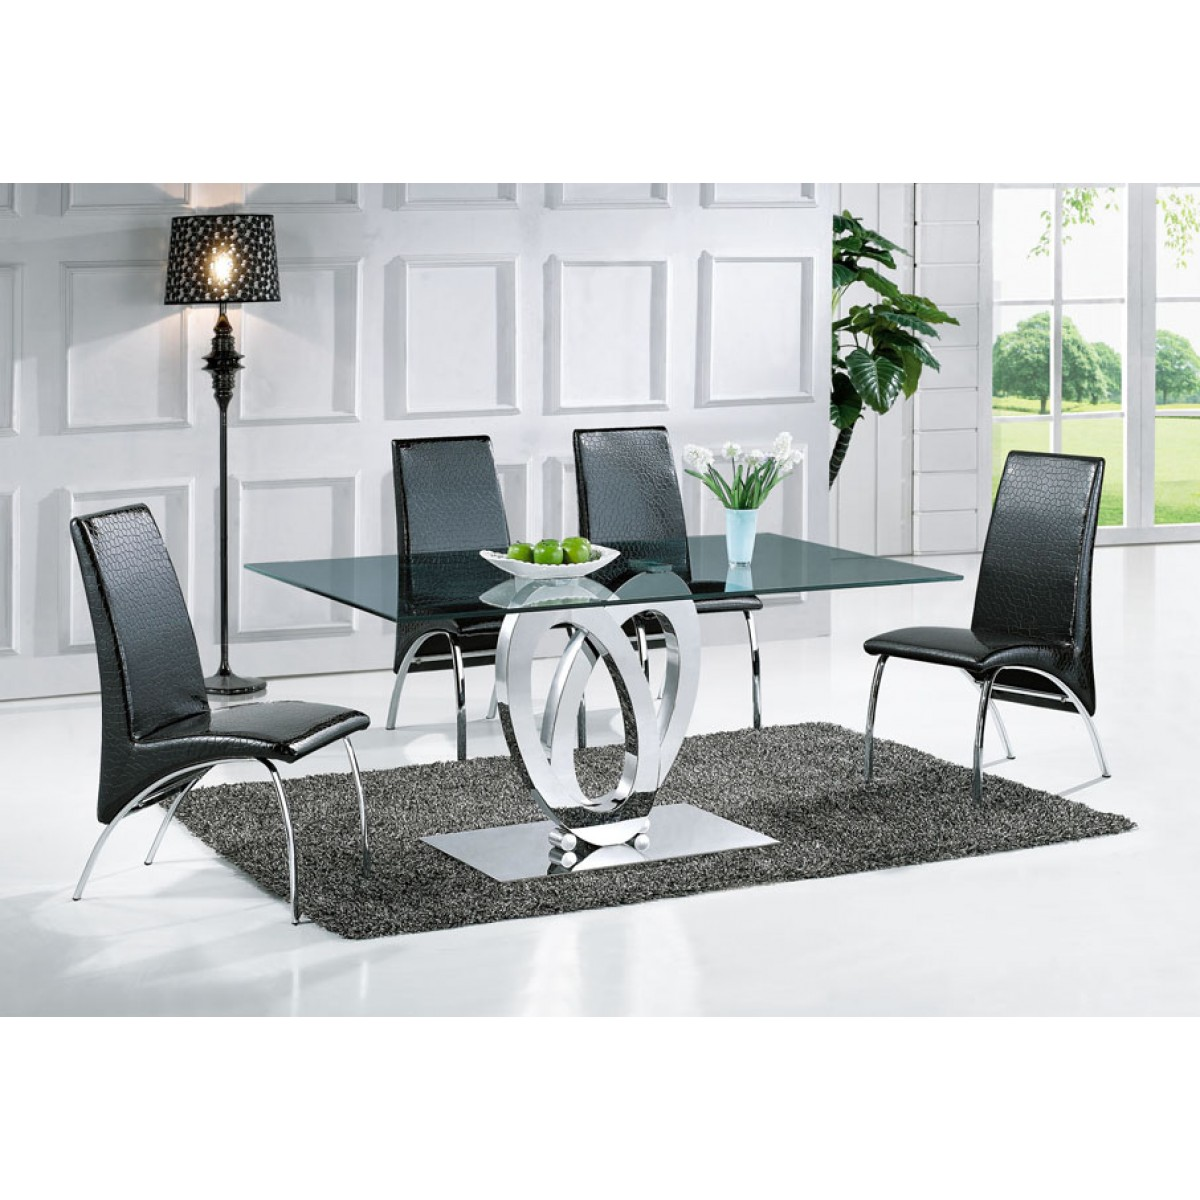 Table manger design ellipse taille au choix tables for Luminaire table salle a manger